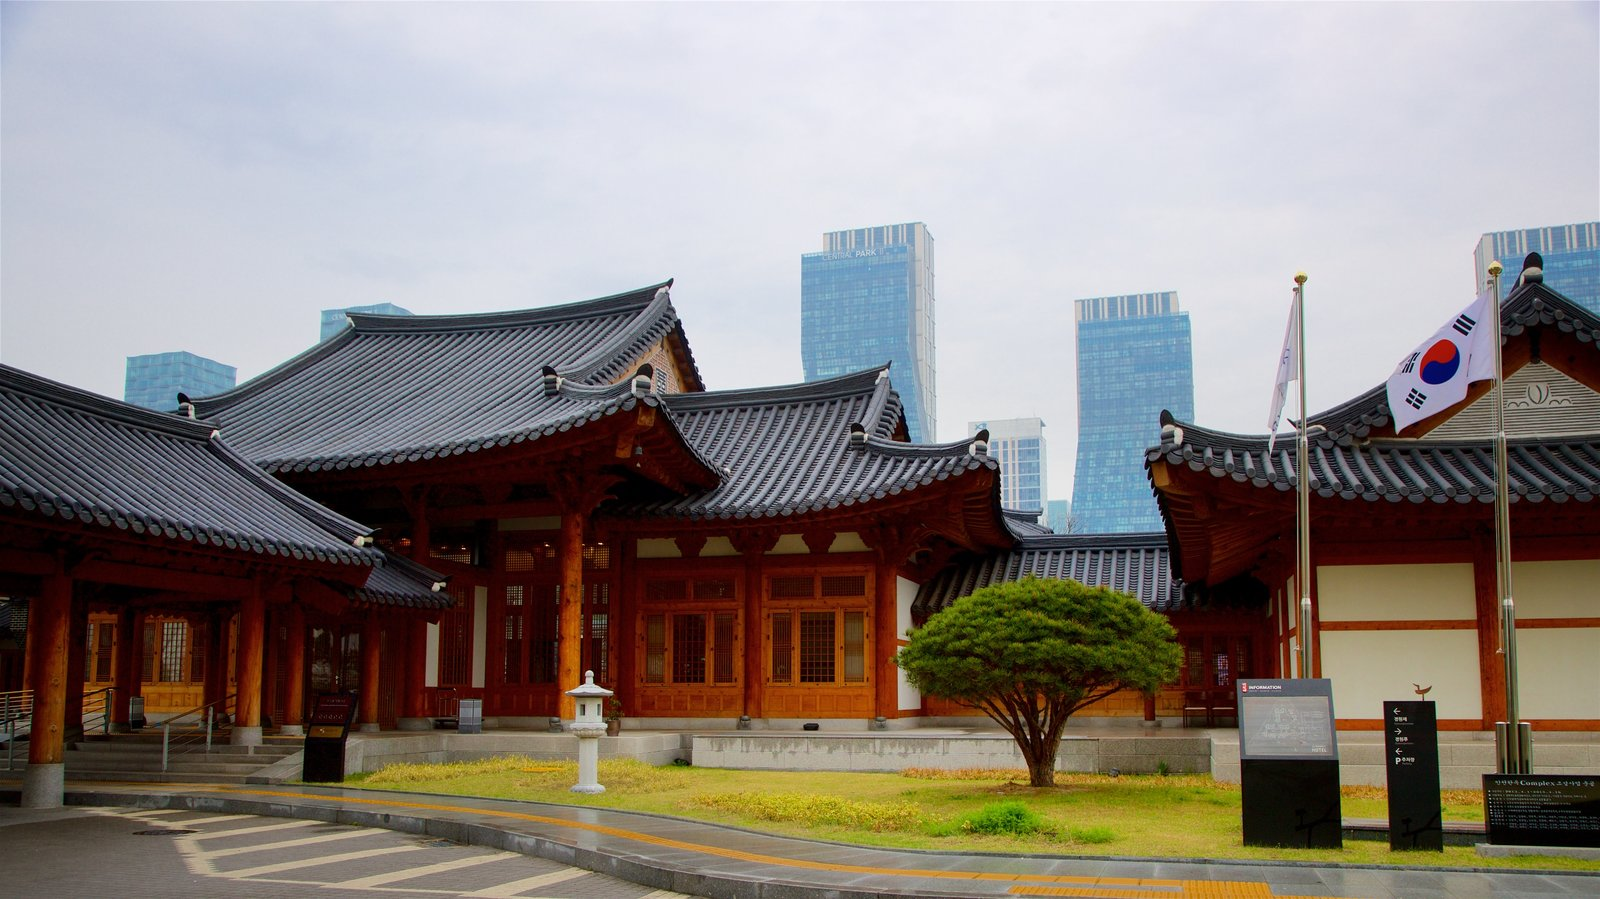 Incheon which includes a city, heritage elements and a high rise building